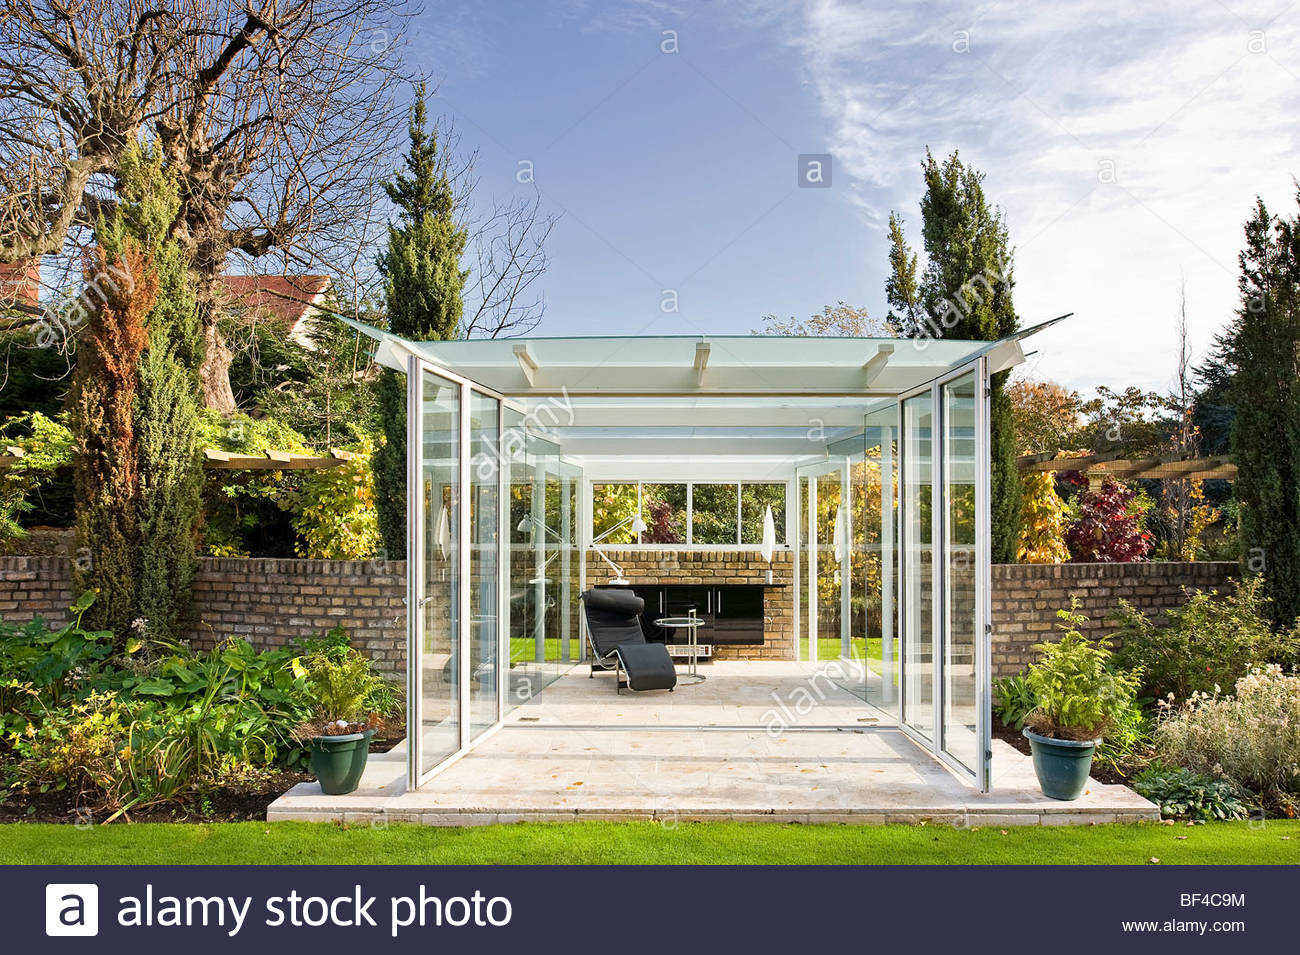 Glass Garden Pavilion Stock Photo Royalty Free Image 26527696